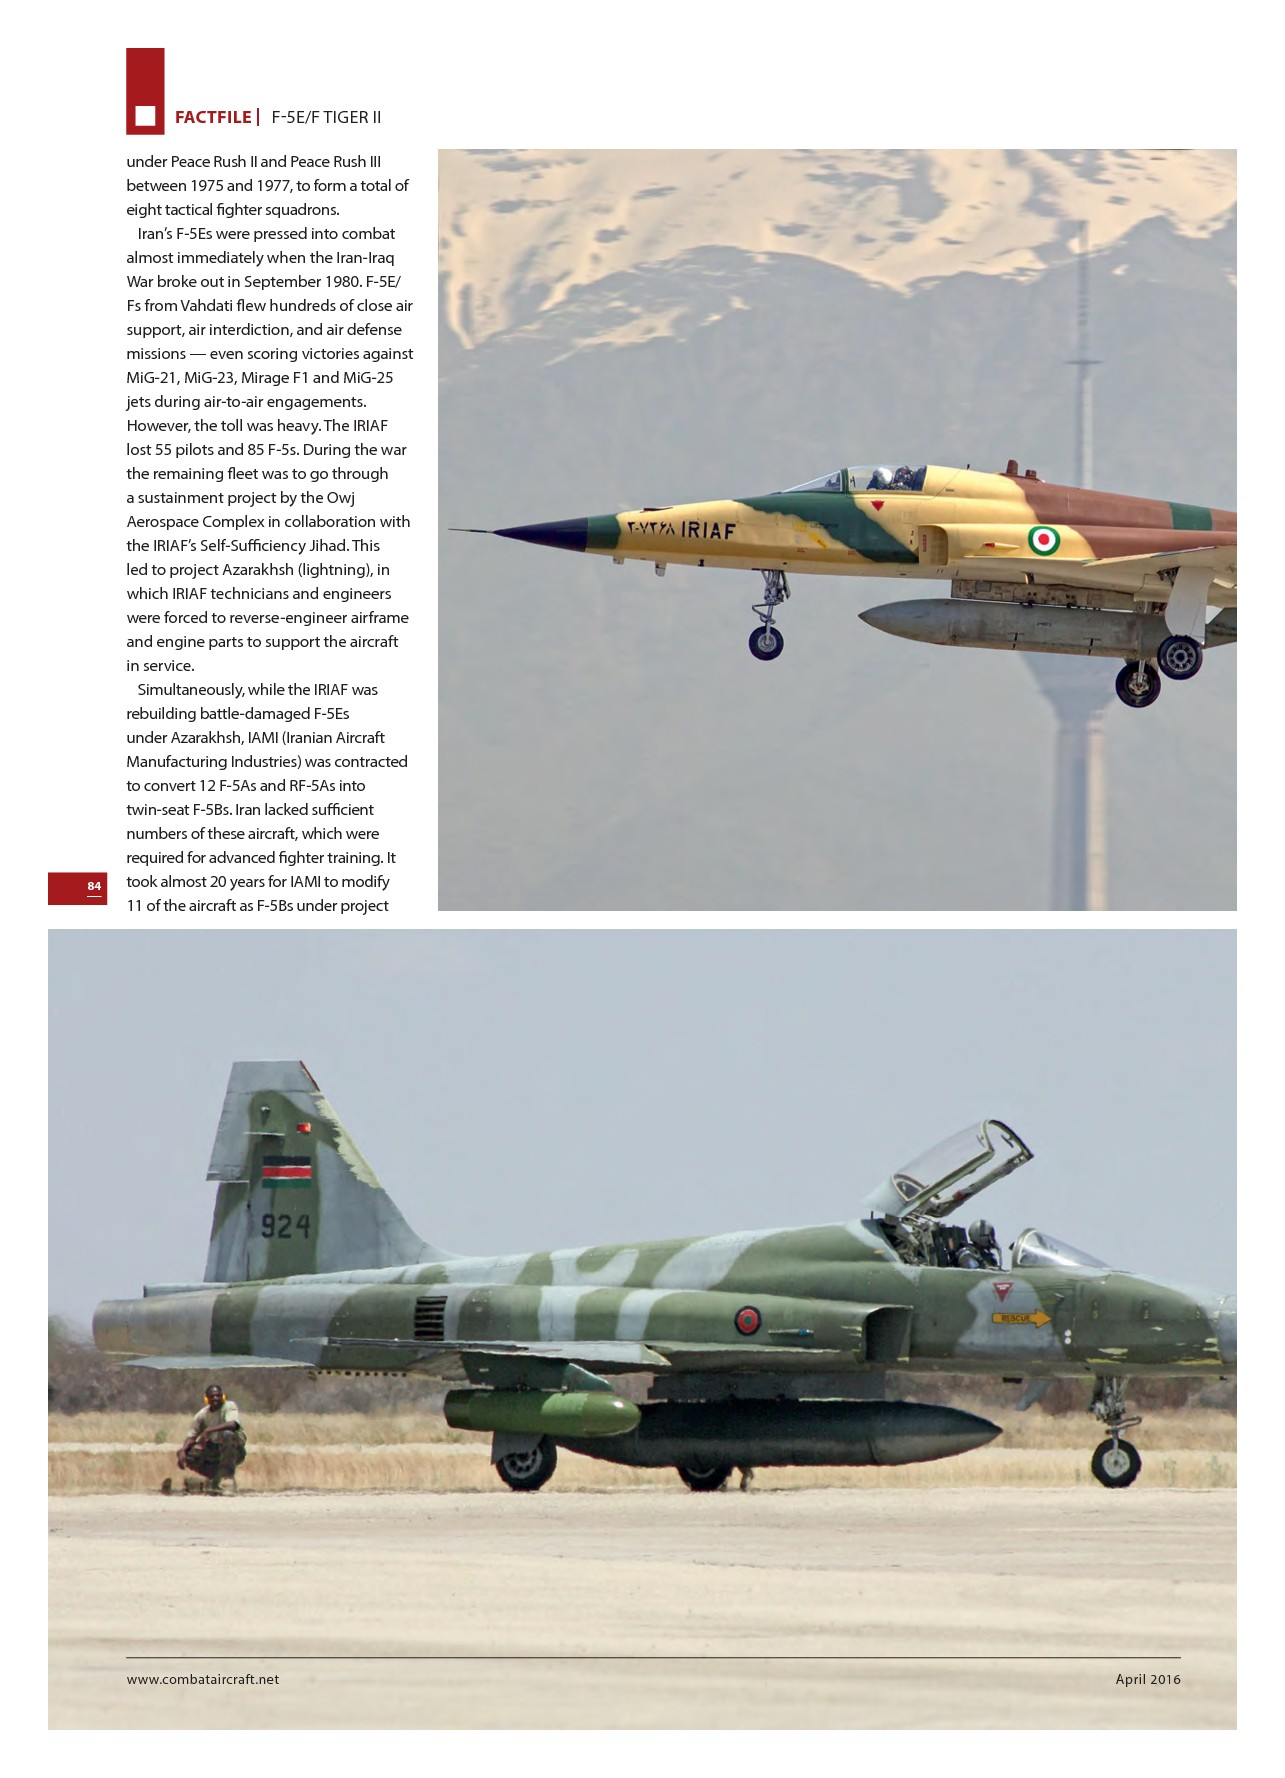 2985_combat_aircraft___april_2016_downmagaz.com_084_002_7wti.jpg